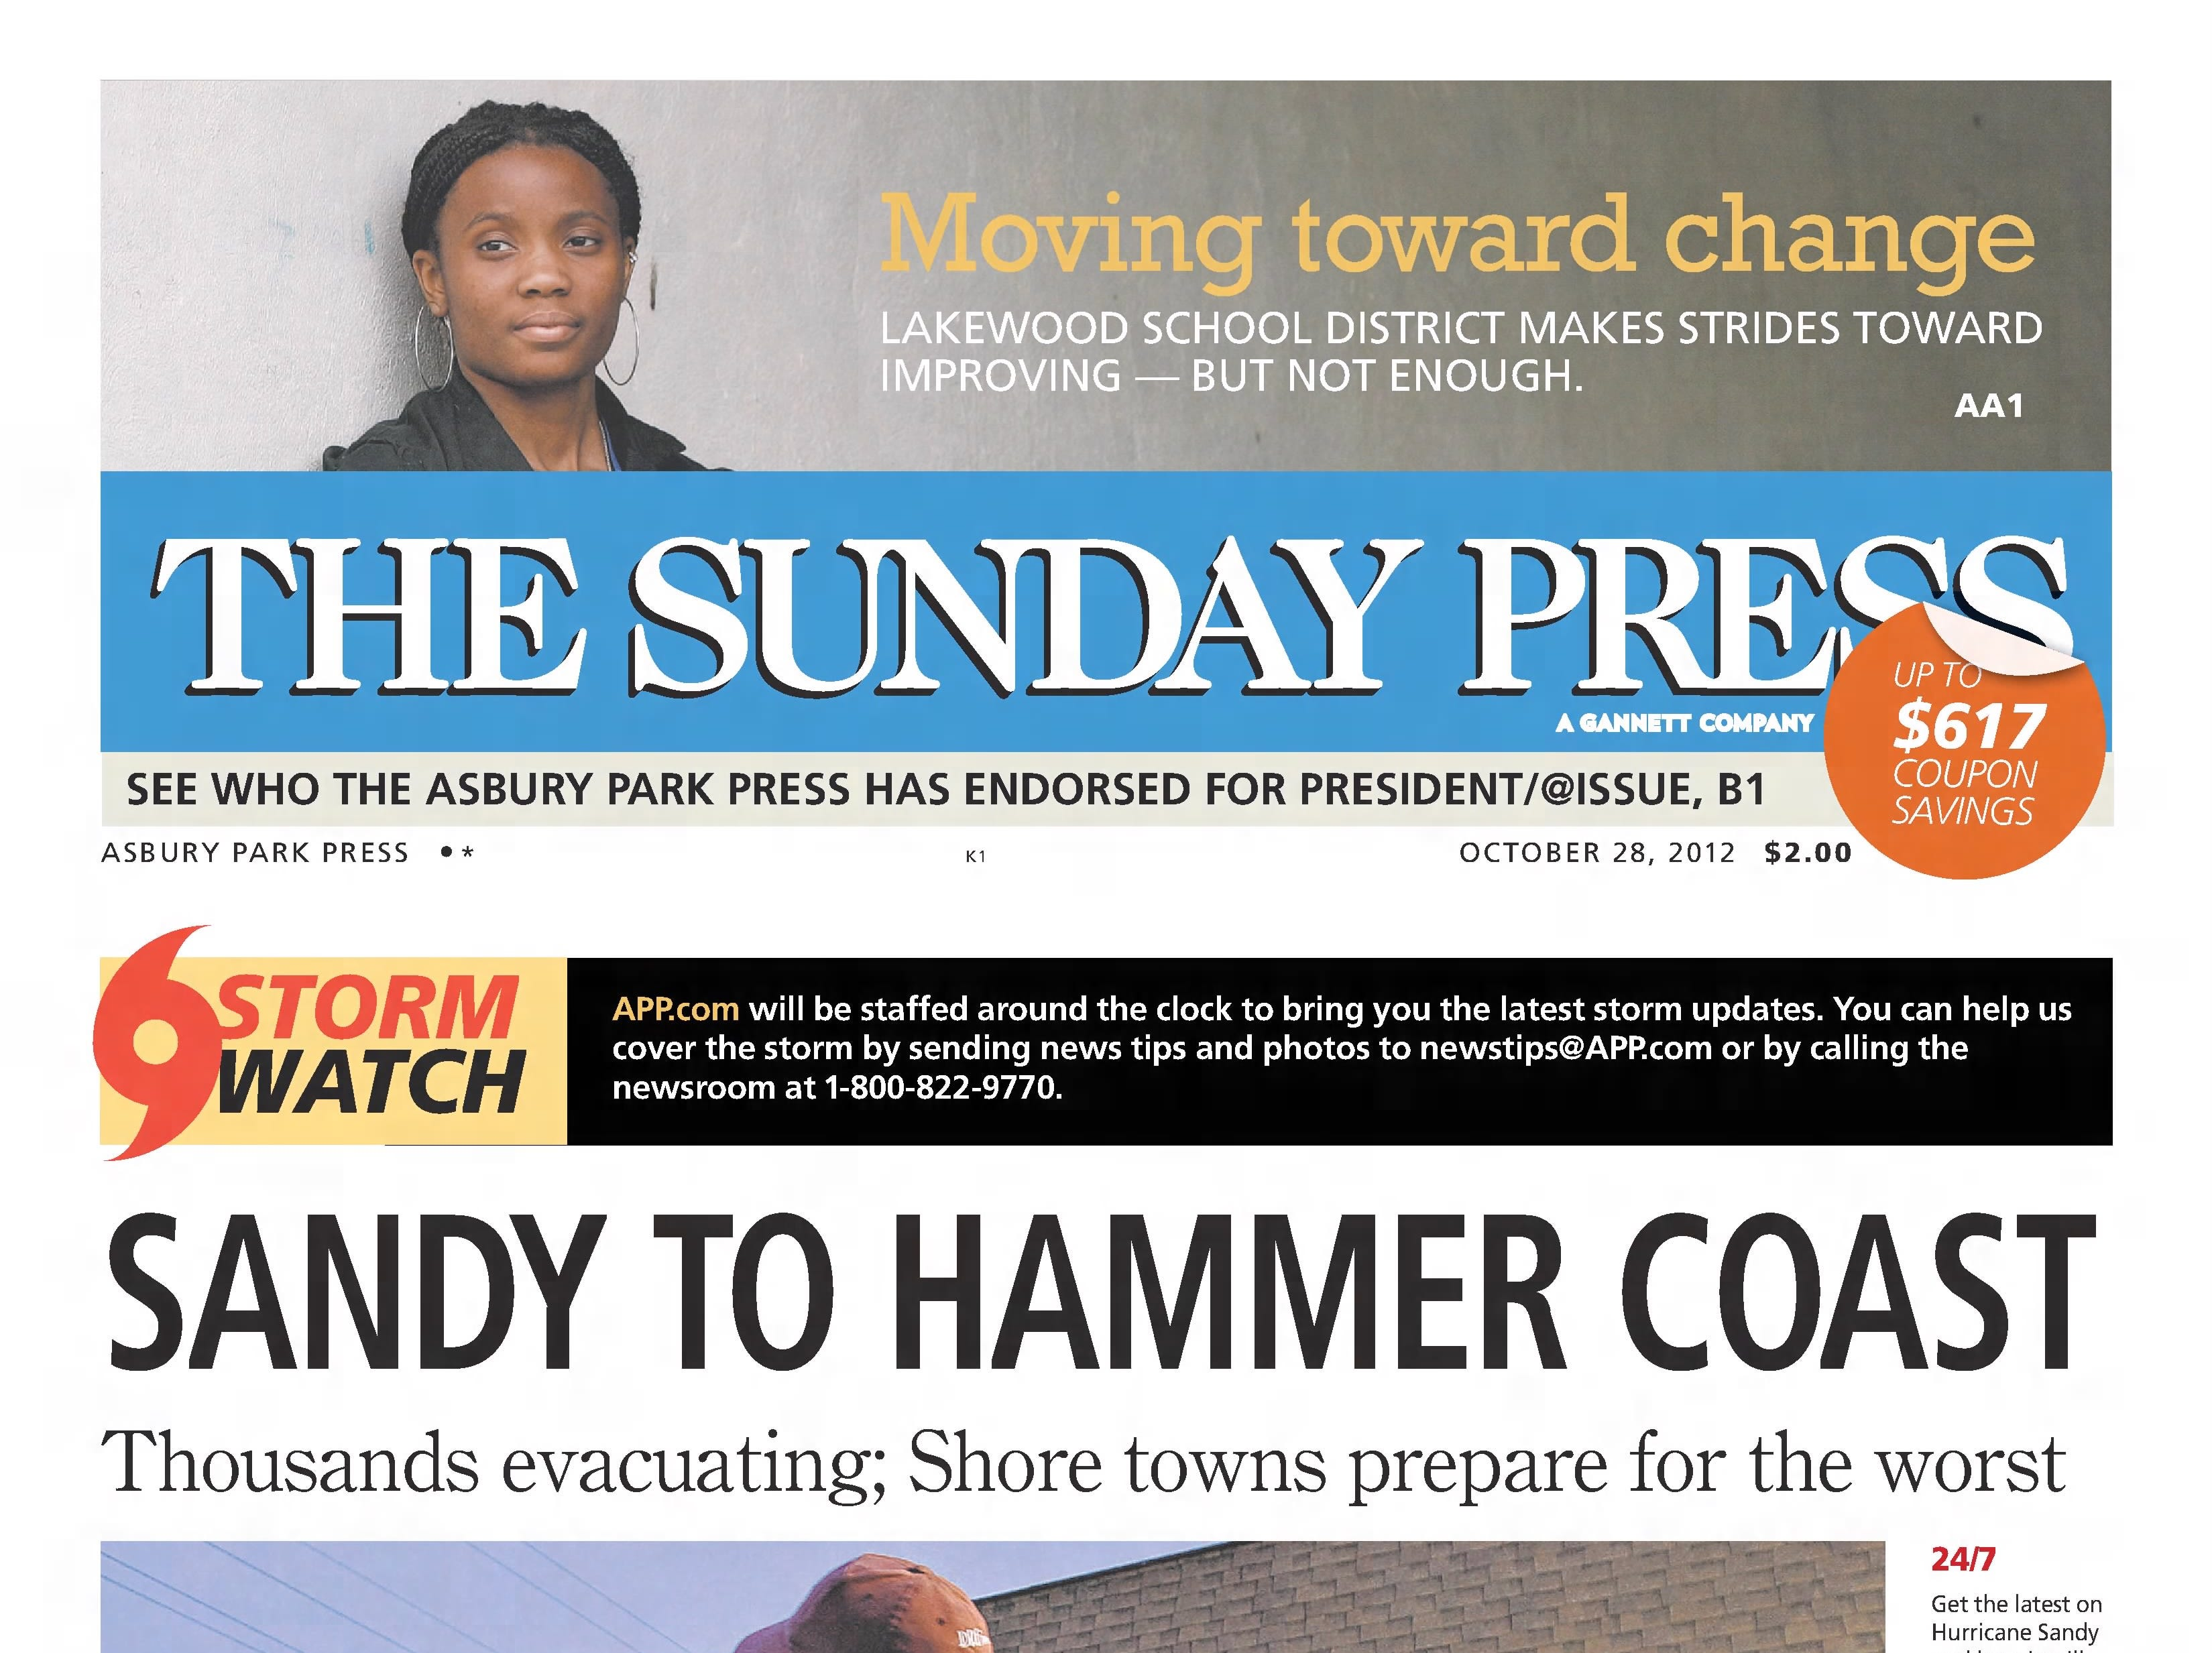 Sunday, Oct. 28, 2012: The Jersey Shore braces for the worst as superstorm Sandy is expected to arrive the next day.